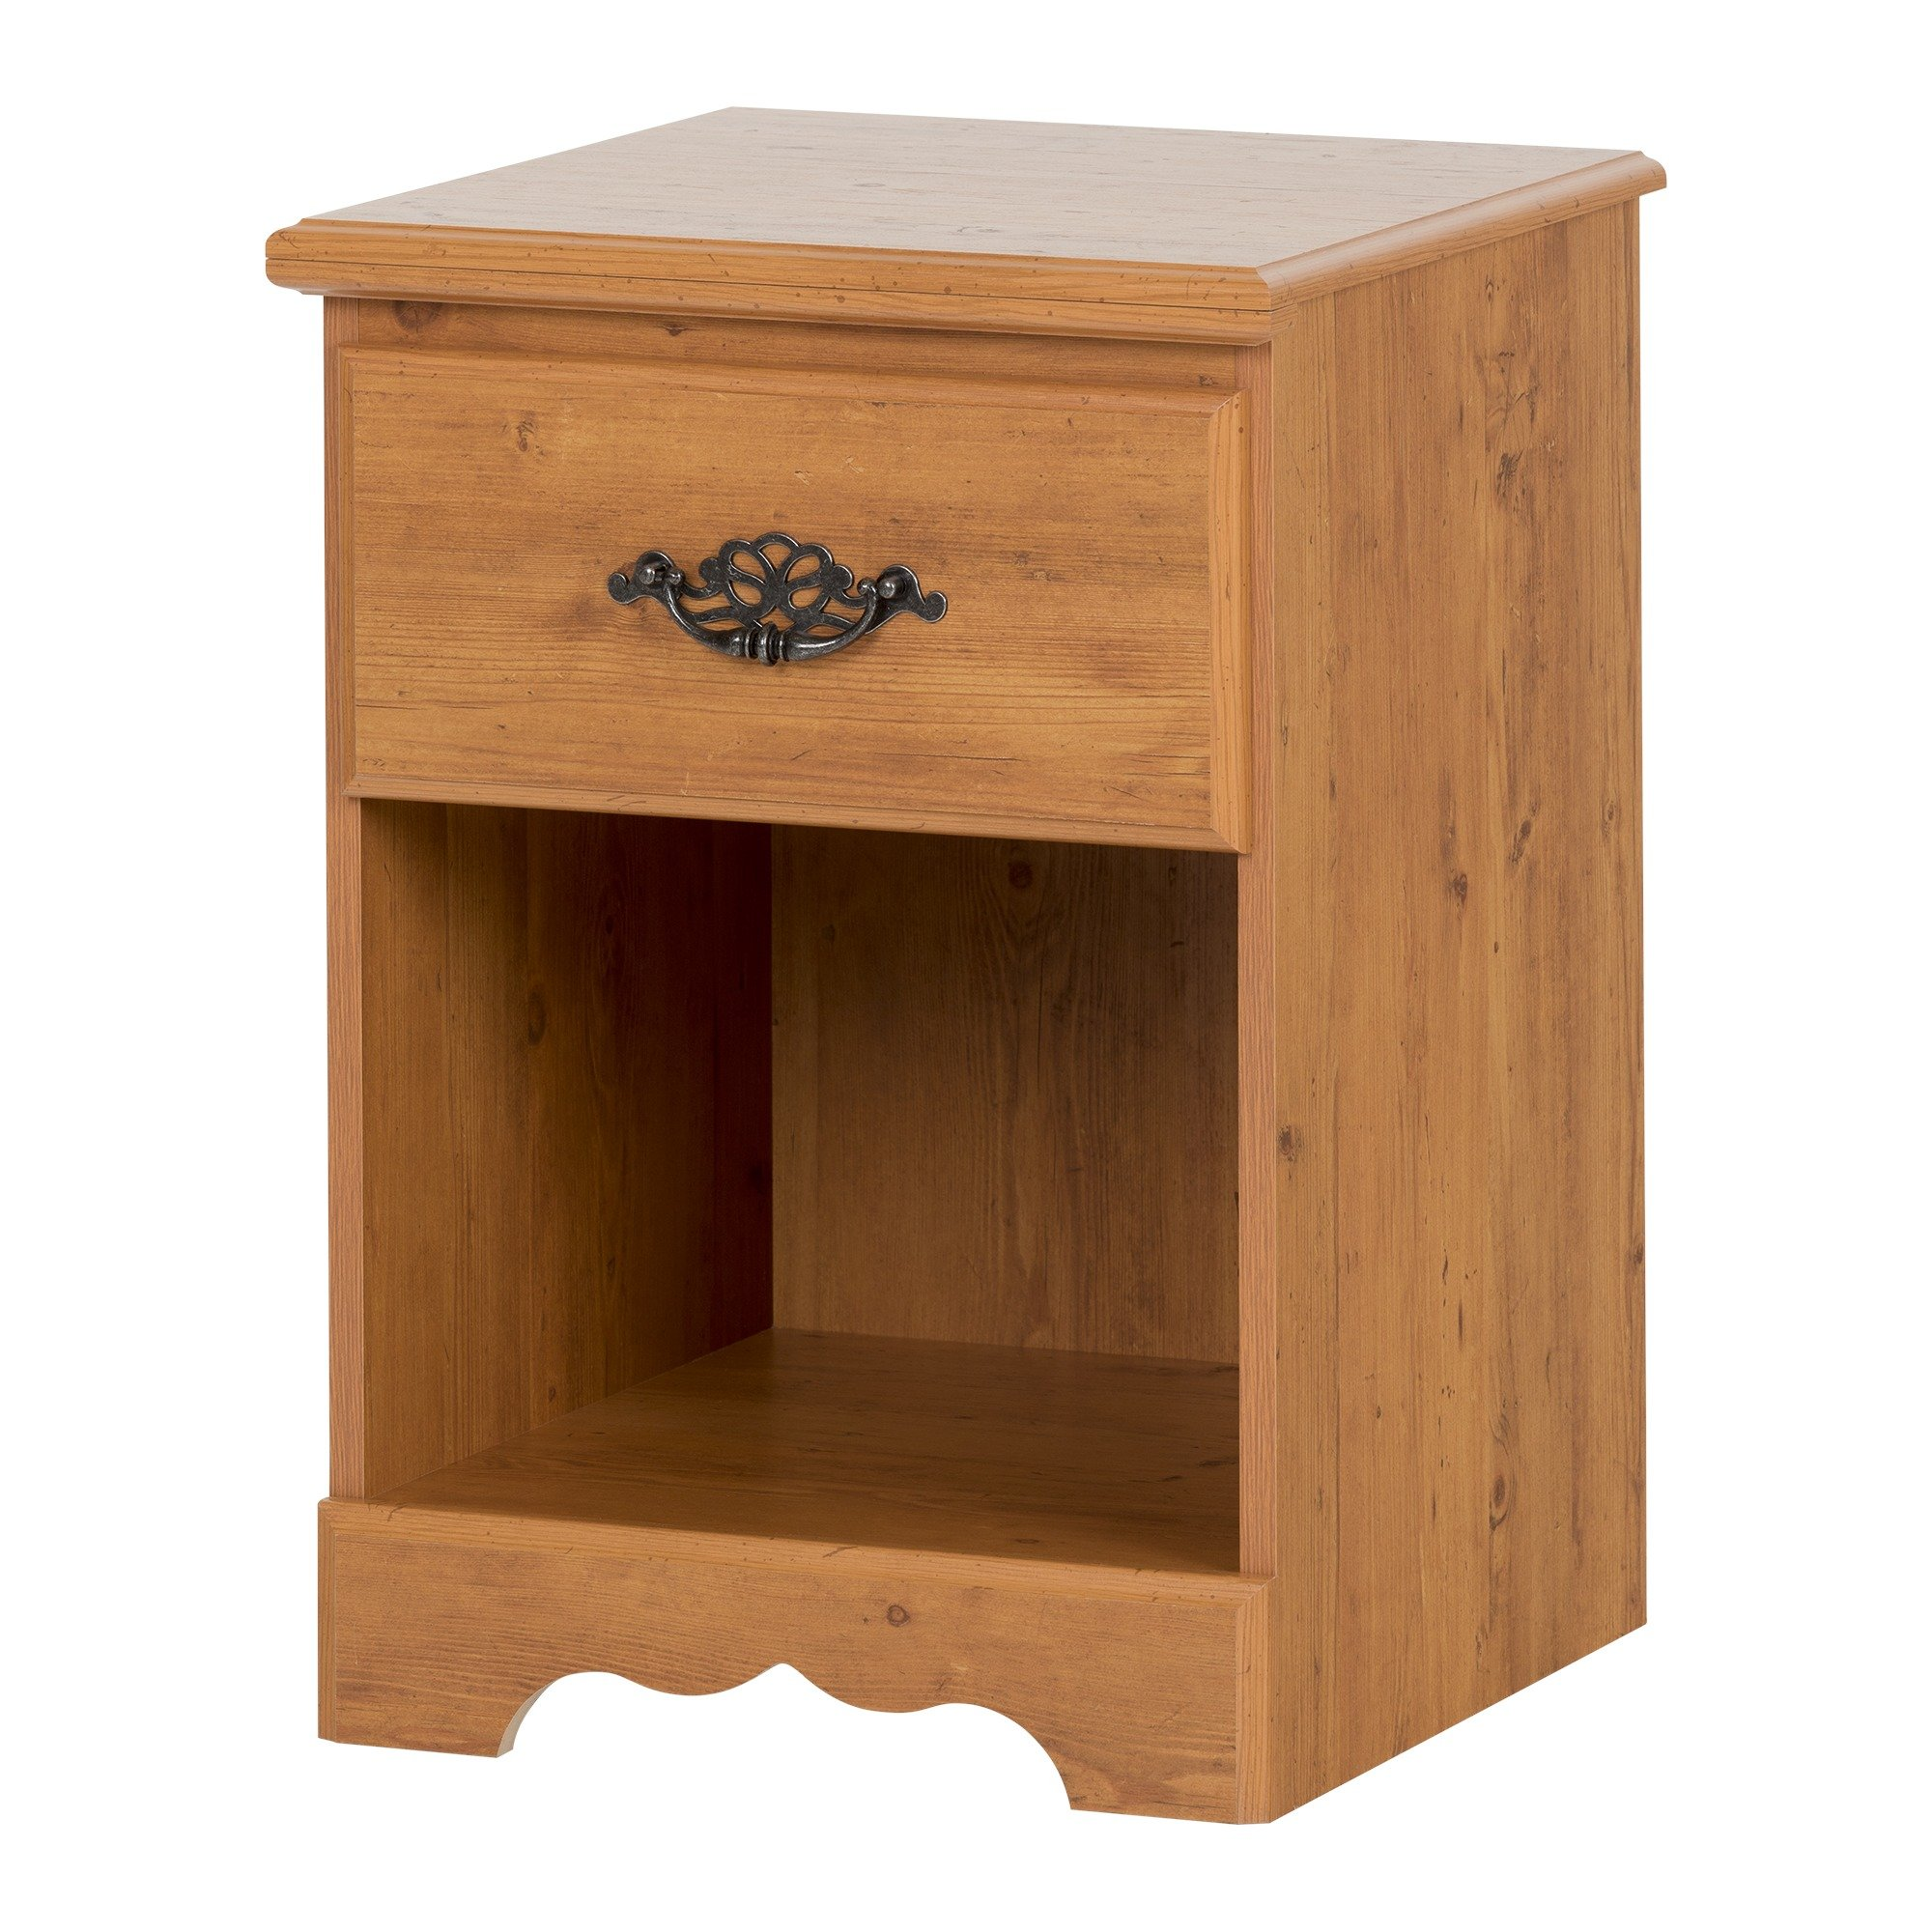 South Shore Prairie Collection Nightstand, Country Pine with Antique Handles by South Shore